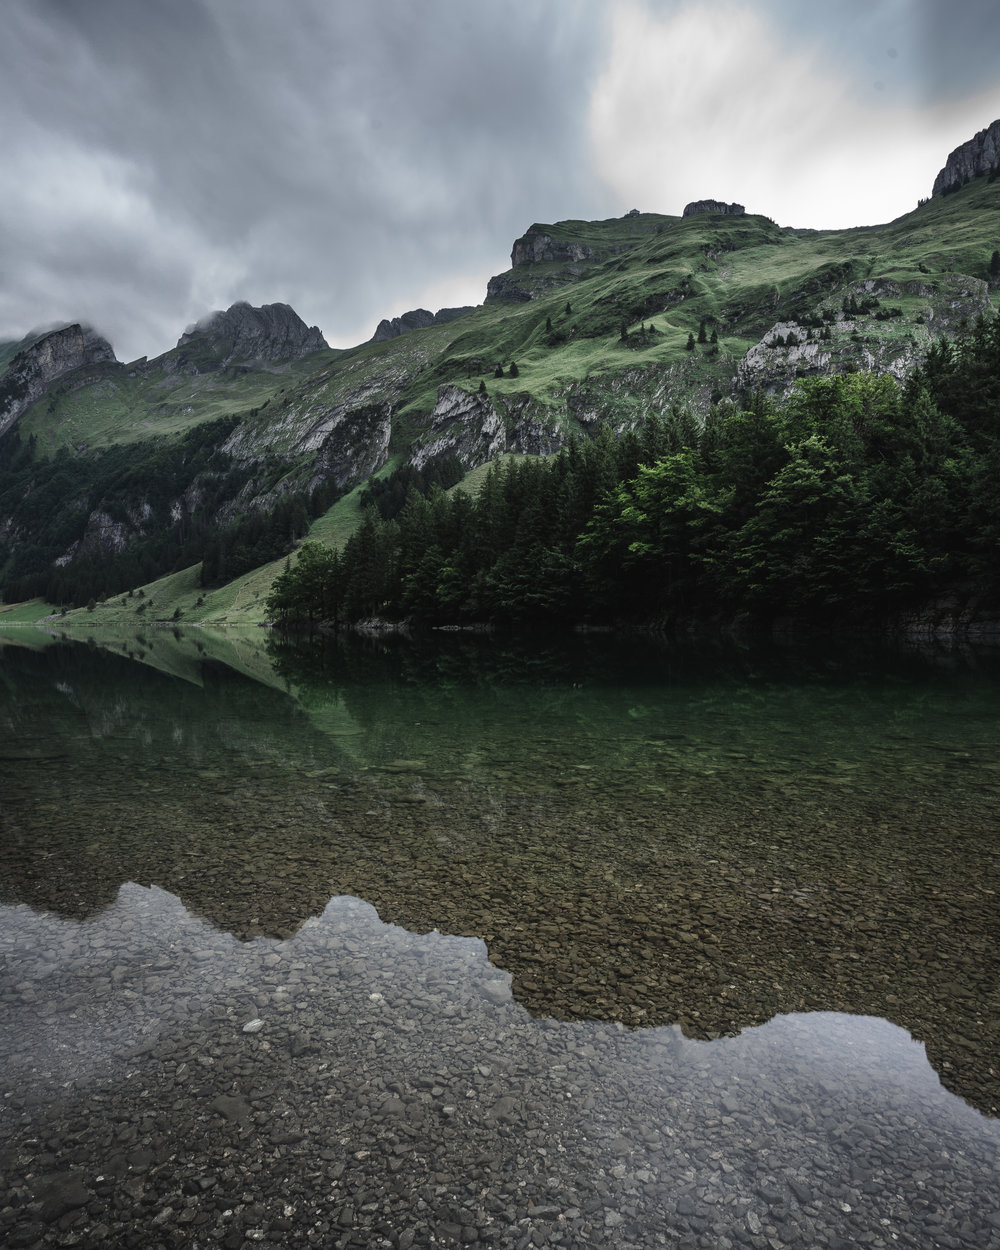 Surreal reflection game at Seelapsee - Switzerland ©drcapture